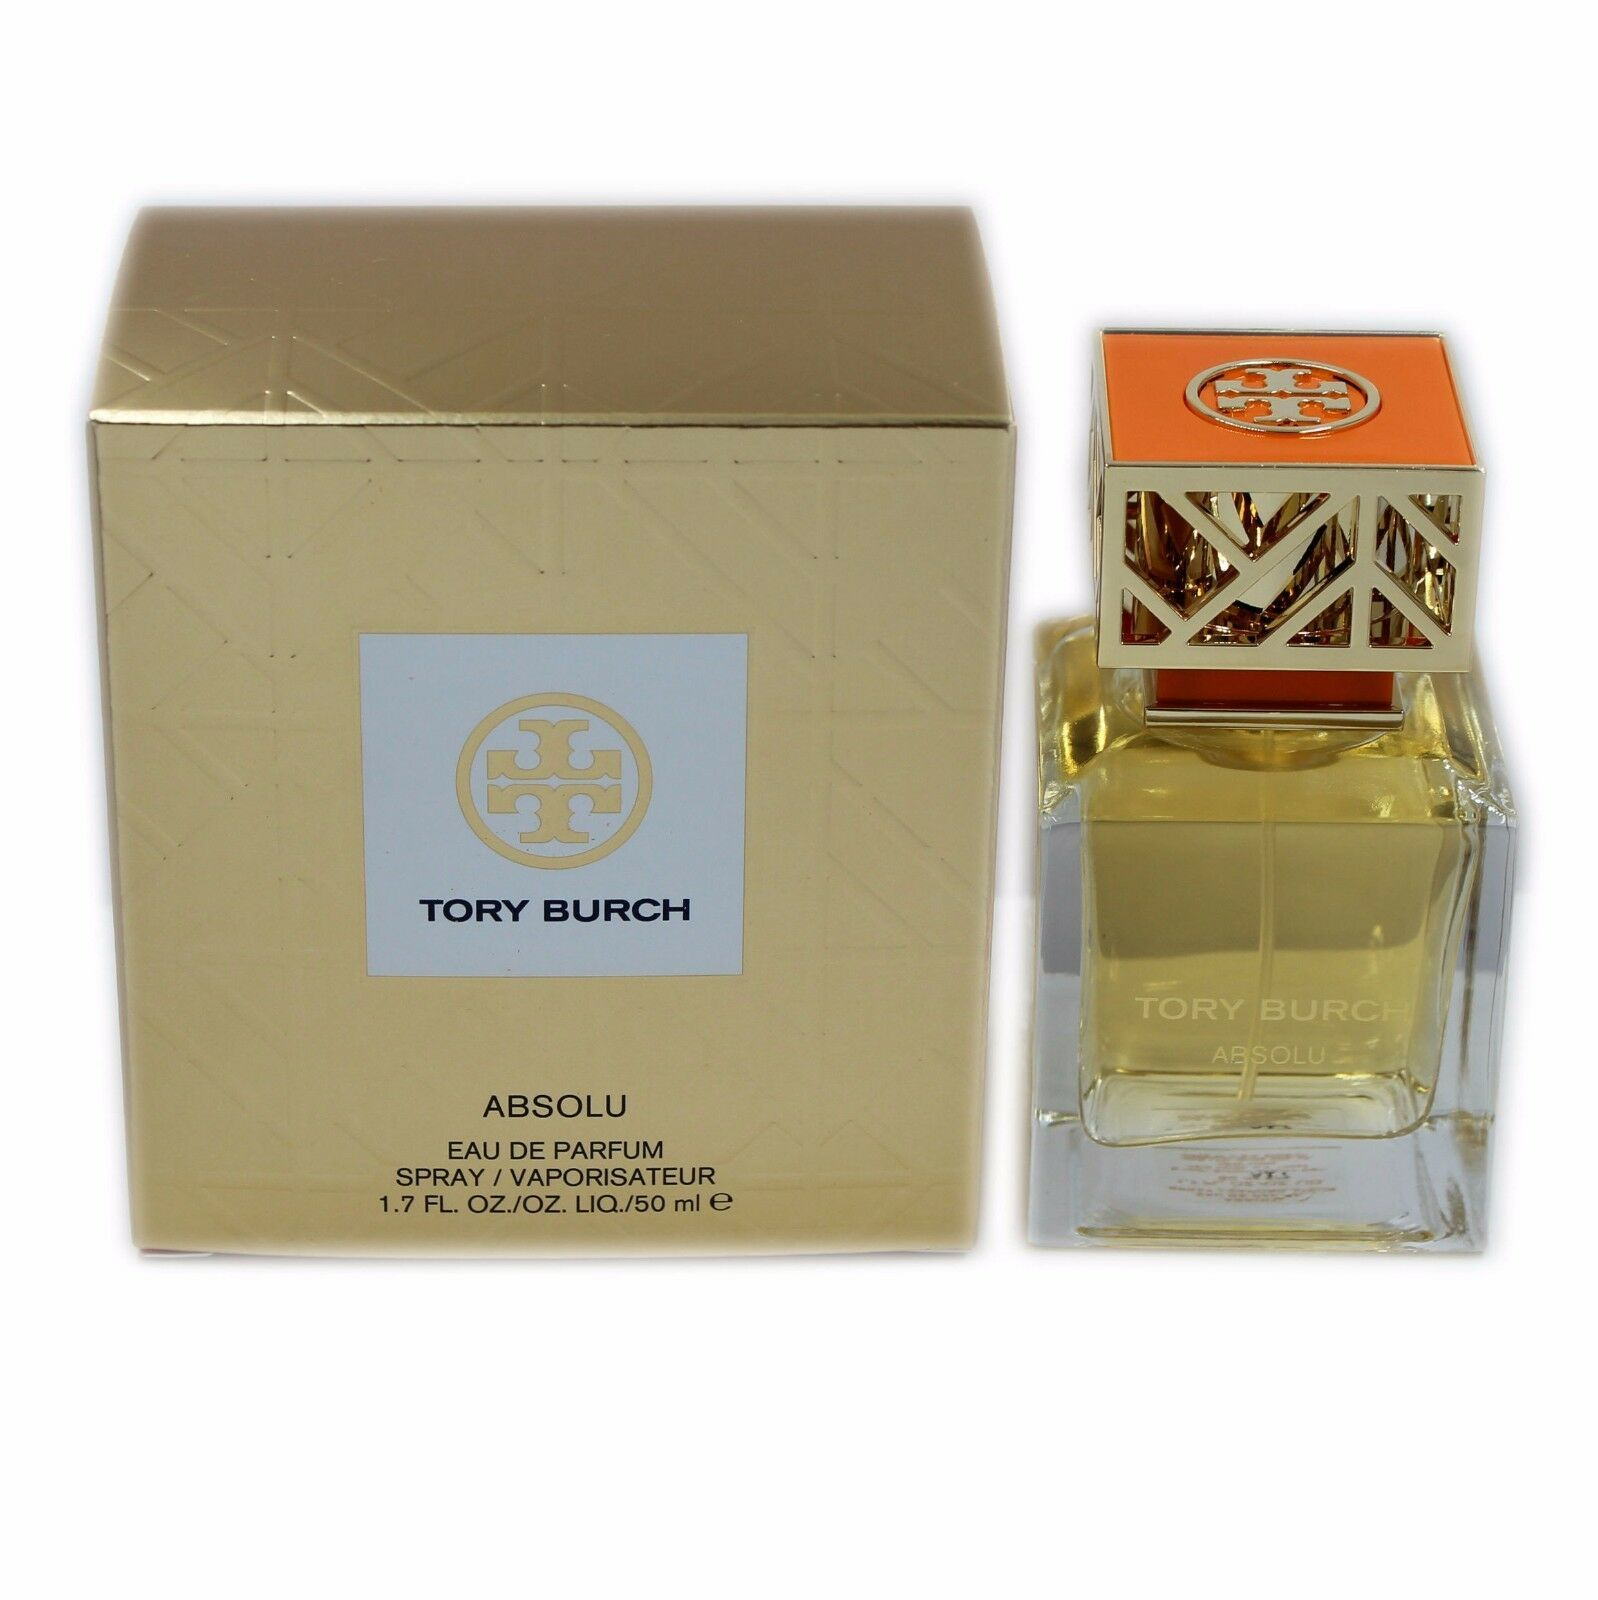 Primary image for TORY BURCH ABSOLU EAU DE PARFUM SPRAY 50 ML/1.7 FL.OZ. NIB-5H3R-01